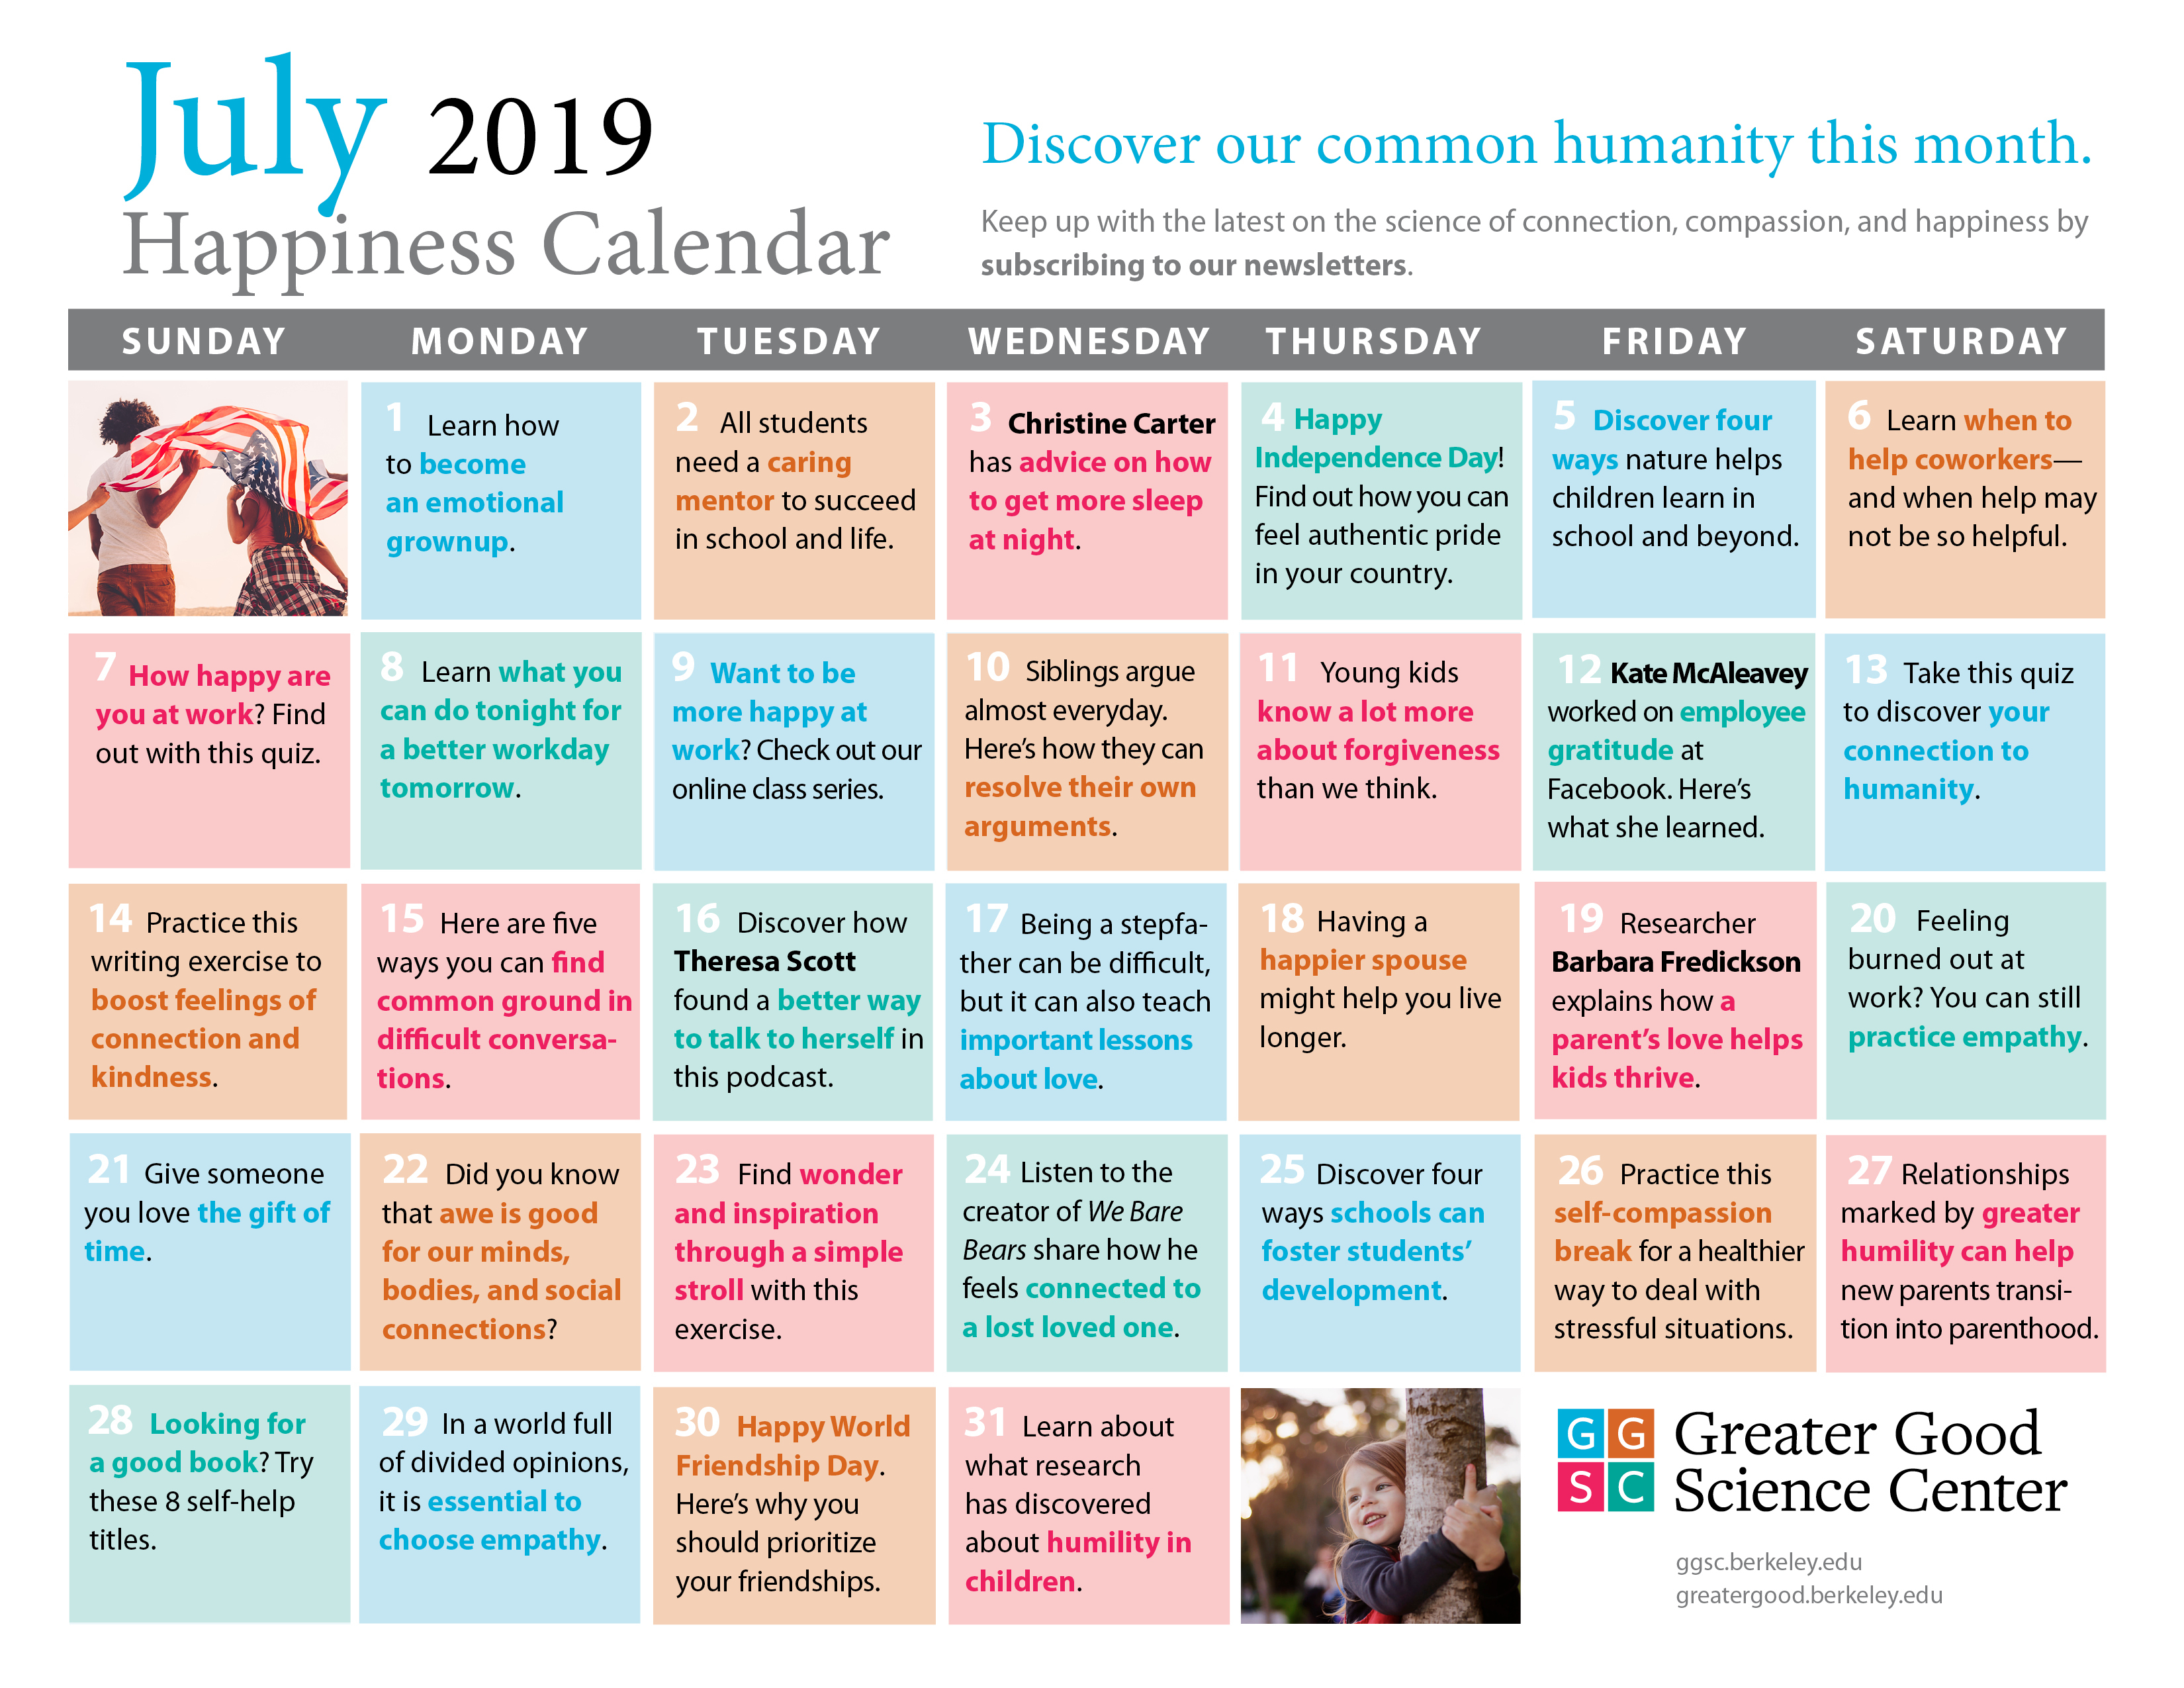 Your Happiness Calendar For July 2019 pertaining to Uc Berkeley 2020 Calendar